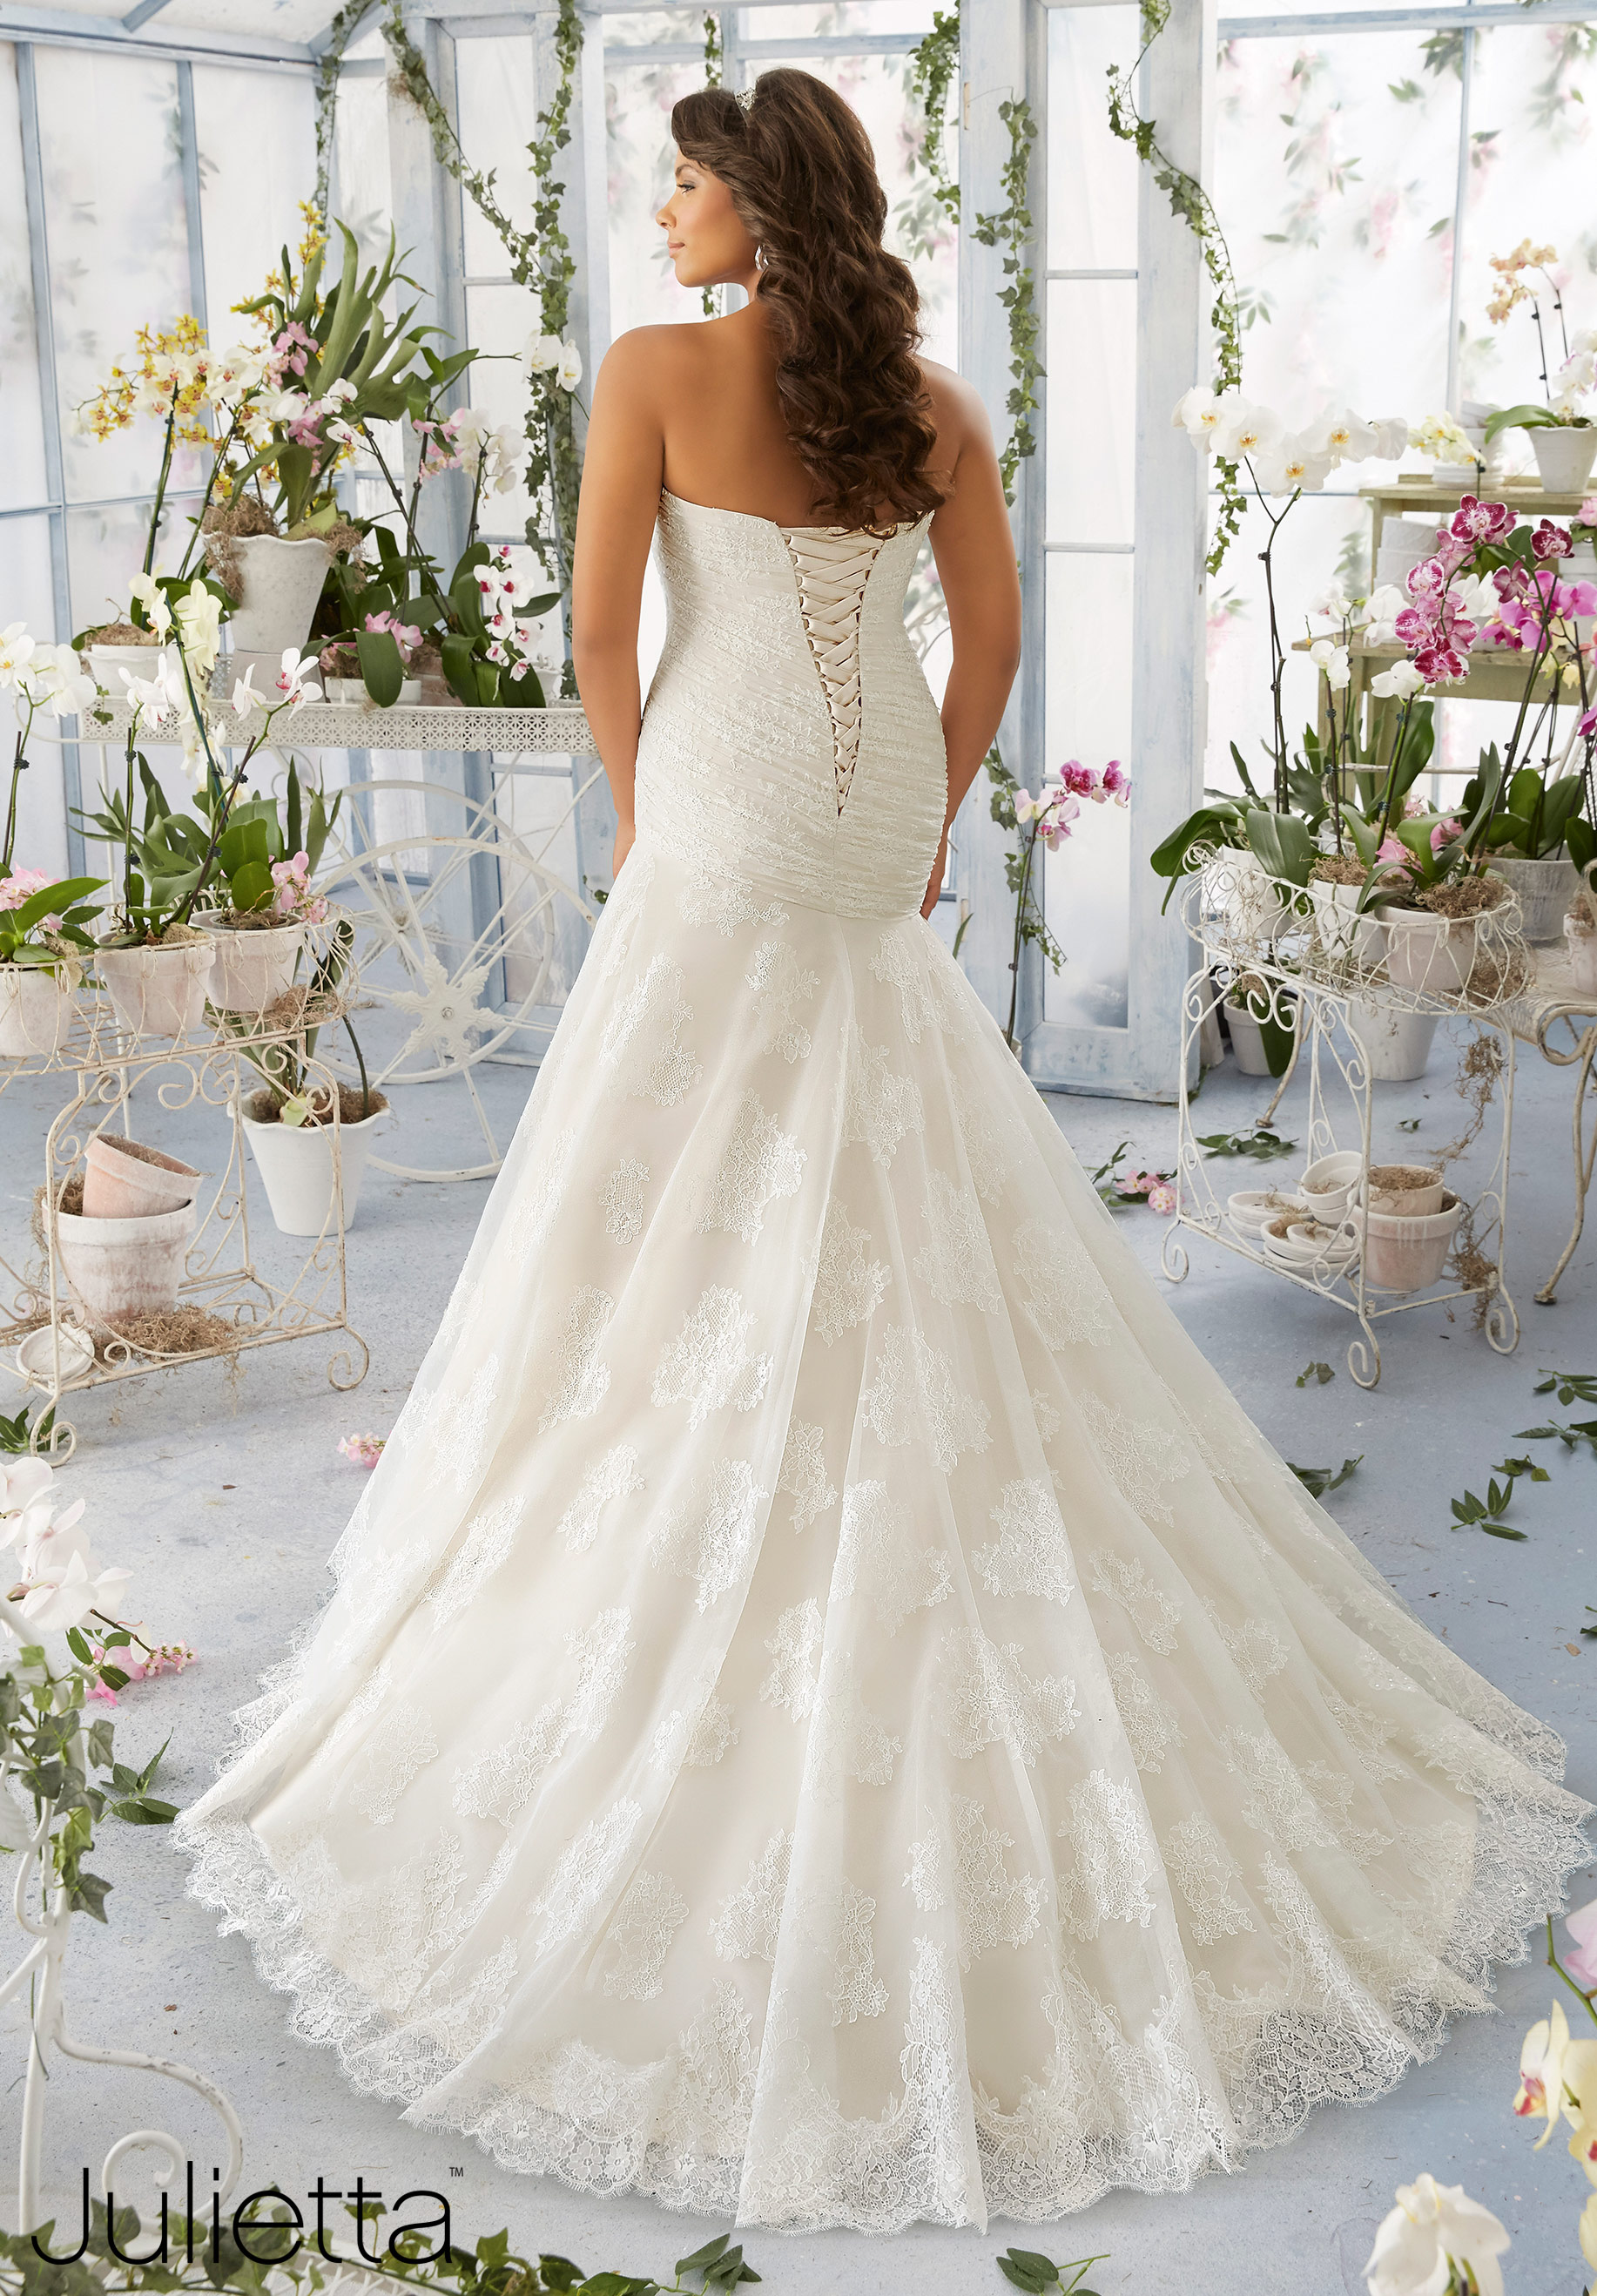 Mori lee wedding dress julietta 3191 catrinas bridal for Mori lee wedding dresses